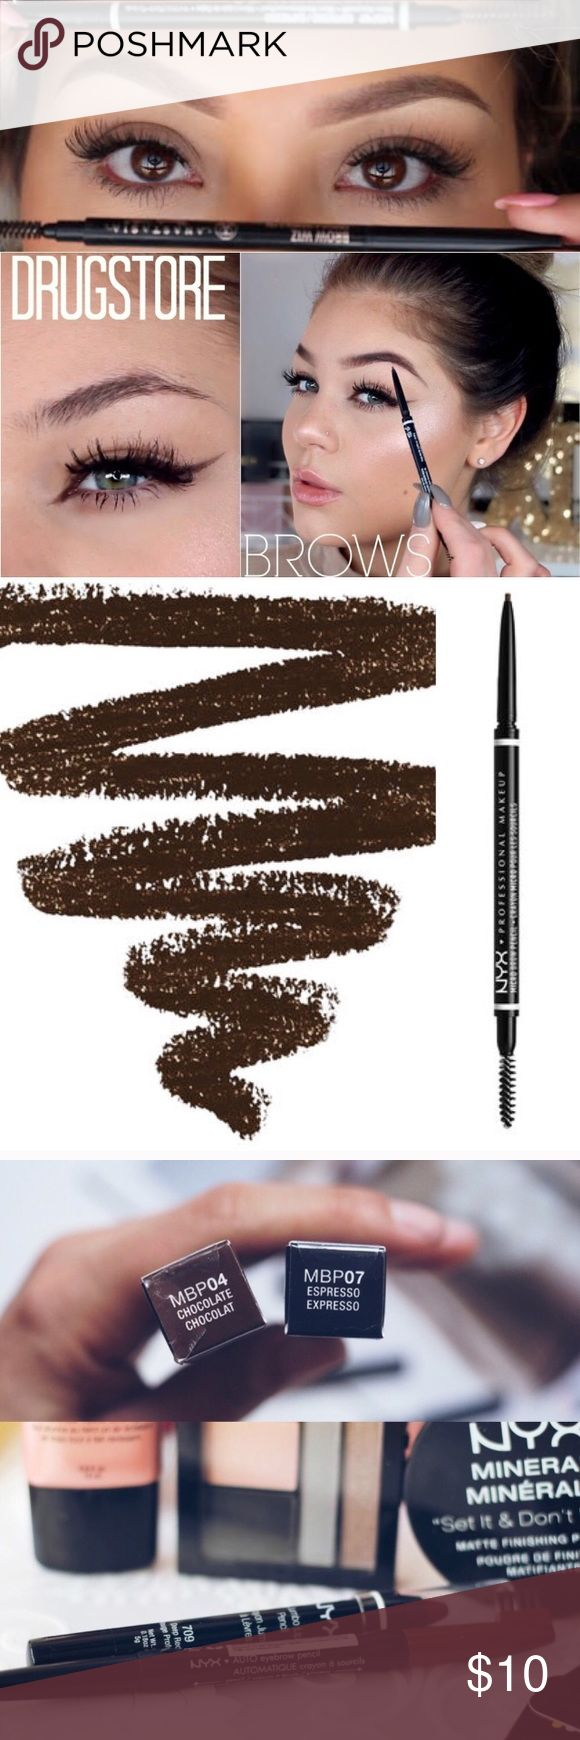 🔅NYX *EXPRESSO* Micro Brow Pen🔅W/GIFTS🎁😍 🔅BRAND NEW & UNOPENED🔅NYX AUTO EYEBROW PENCIL IN *EXPRESSO*🔅Build FULL beautiful brows with NYXs ultra-thin Micro Brow Pencil!! So precise it coats even the finest hair with color for a *natural* looking finish!🔅🔅INCLUDES SUPER CUTE FREE GIFTS THAT UR GONNA LOVE🔅EXPEDITED SHIPPING🔅BUNDLE UR 3 FAVORITE ITEMS FOR AN *ADDITIONAL* 15% OFF AND FREE NYX PRODUCT!!🔅READ MY REVIEWS🔅TONS OF GIFTS🔅BUNDLE & SAVE MONEY🔅EVEN ASK ABOUT SOLD…